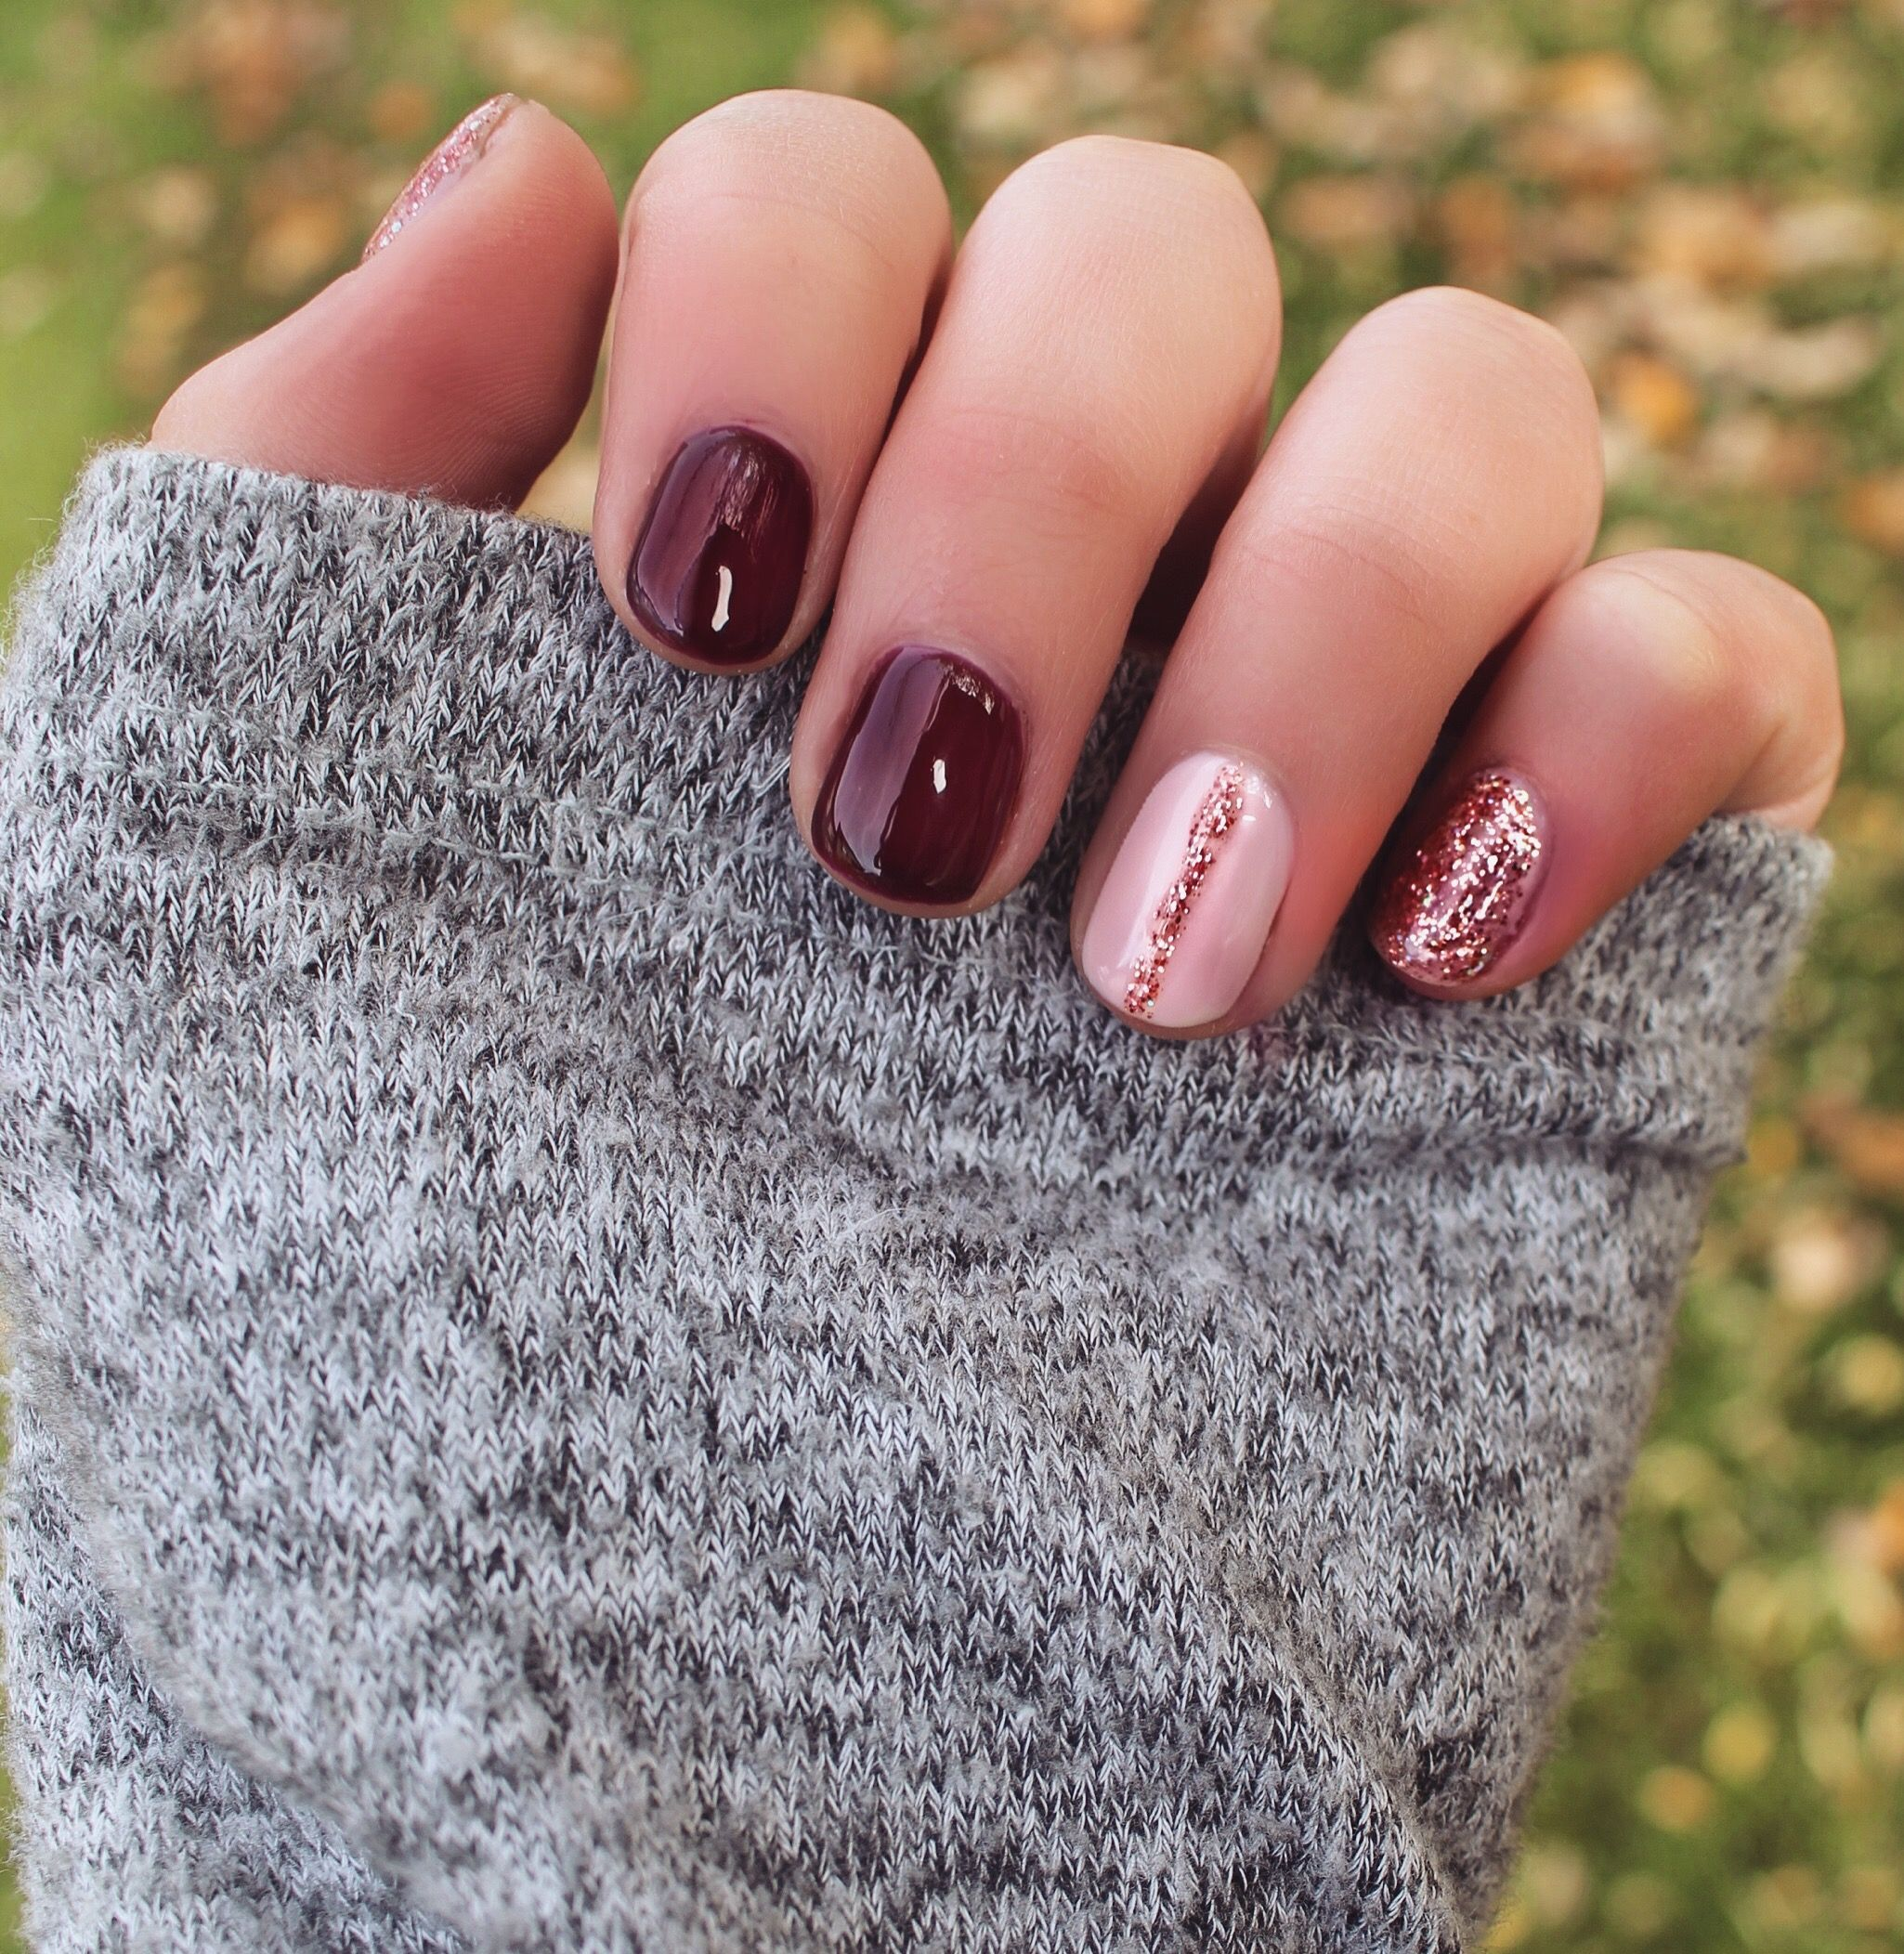 Fall Nails Fall/Autumn fingernails done with gel nail ...